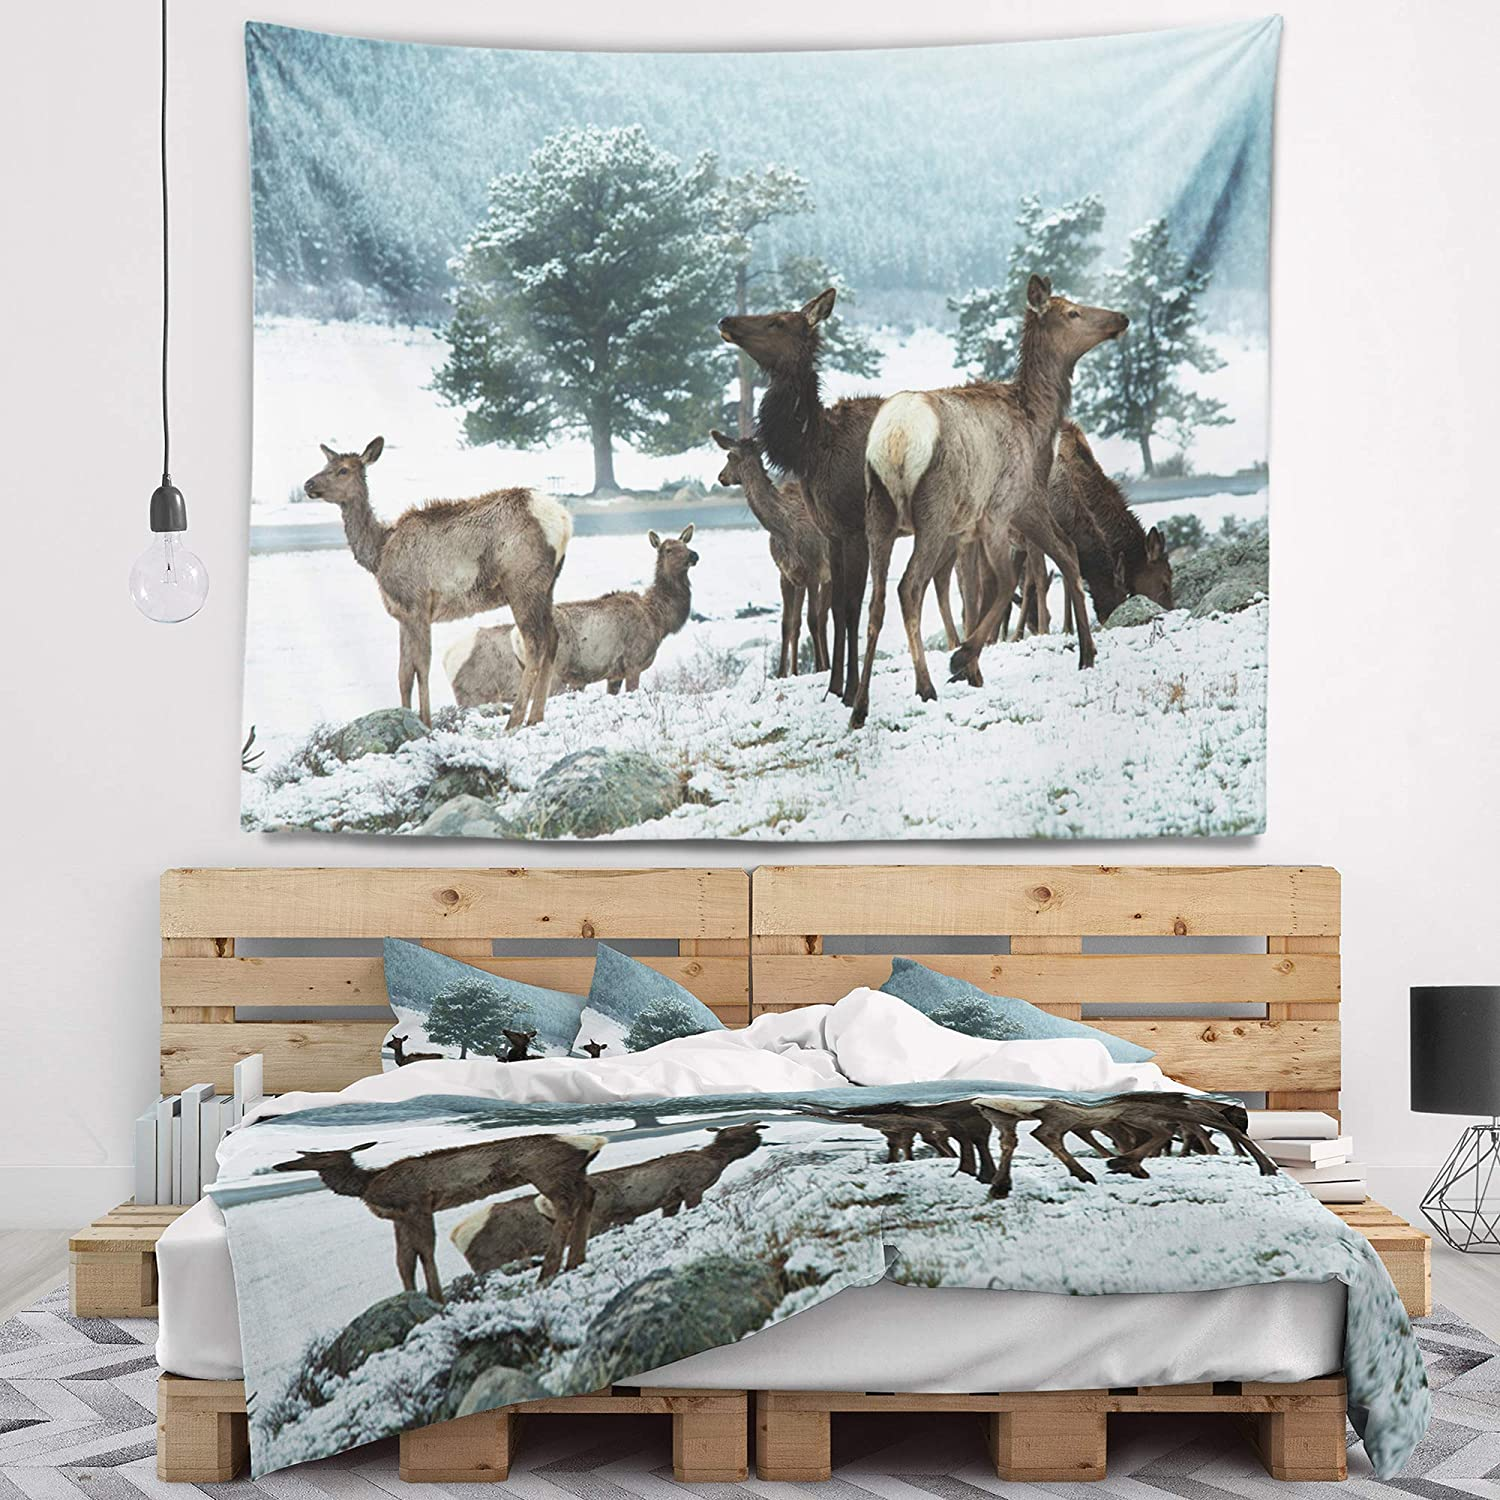 Designart TAP12436-60-50  Gang of Deer in Rocky Mountains Landscape Blanket D/écor Art for Home and Office Wall Tapestry Large x 50 in in 60 in